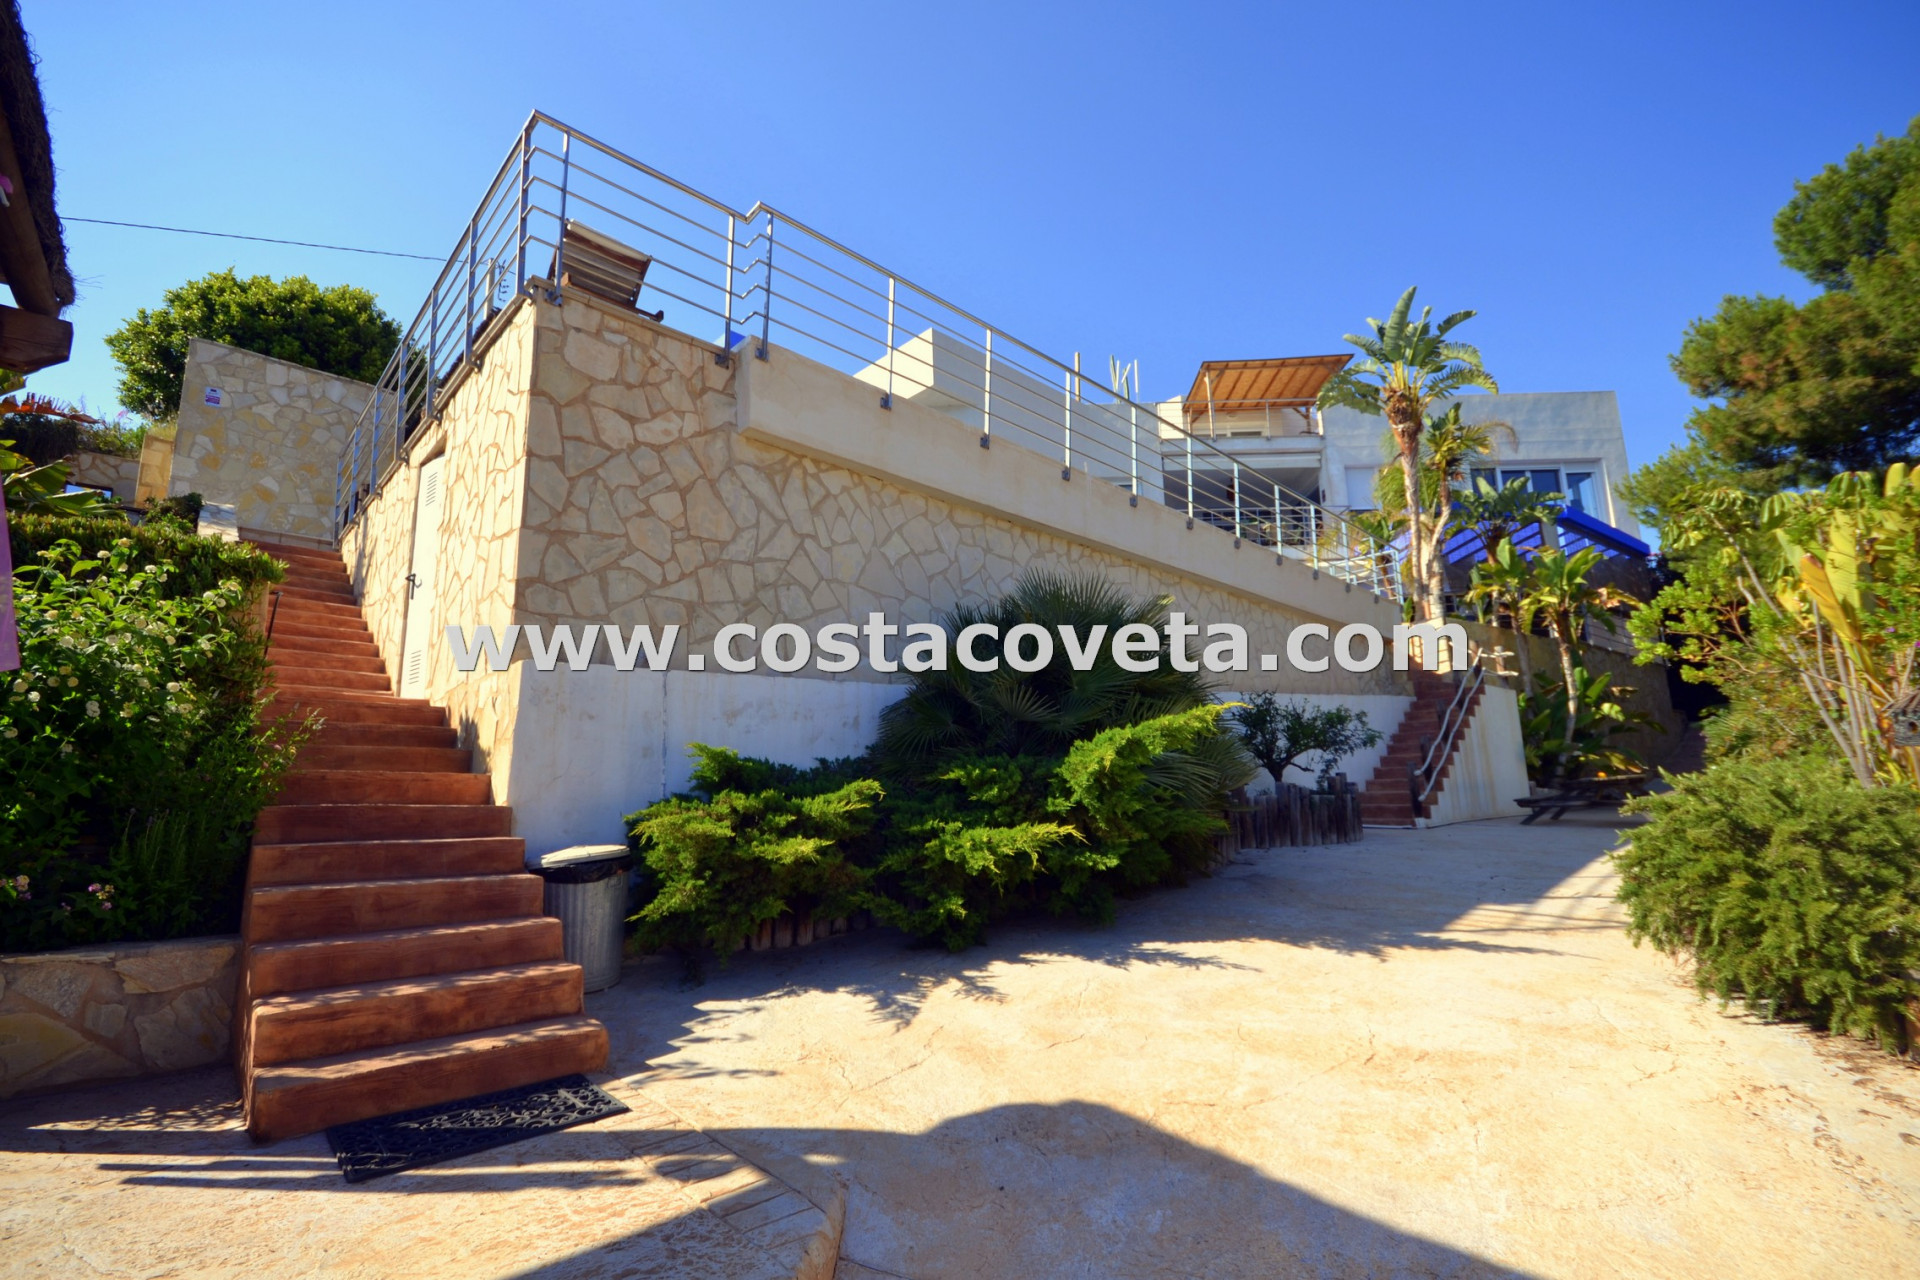 Luxury, privacy and elegance on the front line of the Mediterranean at la Coveta Fuma